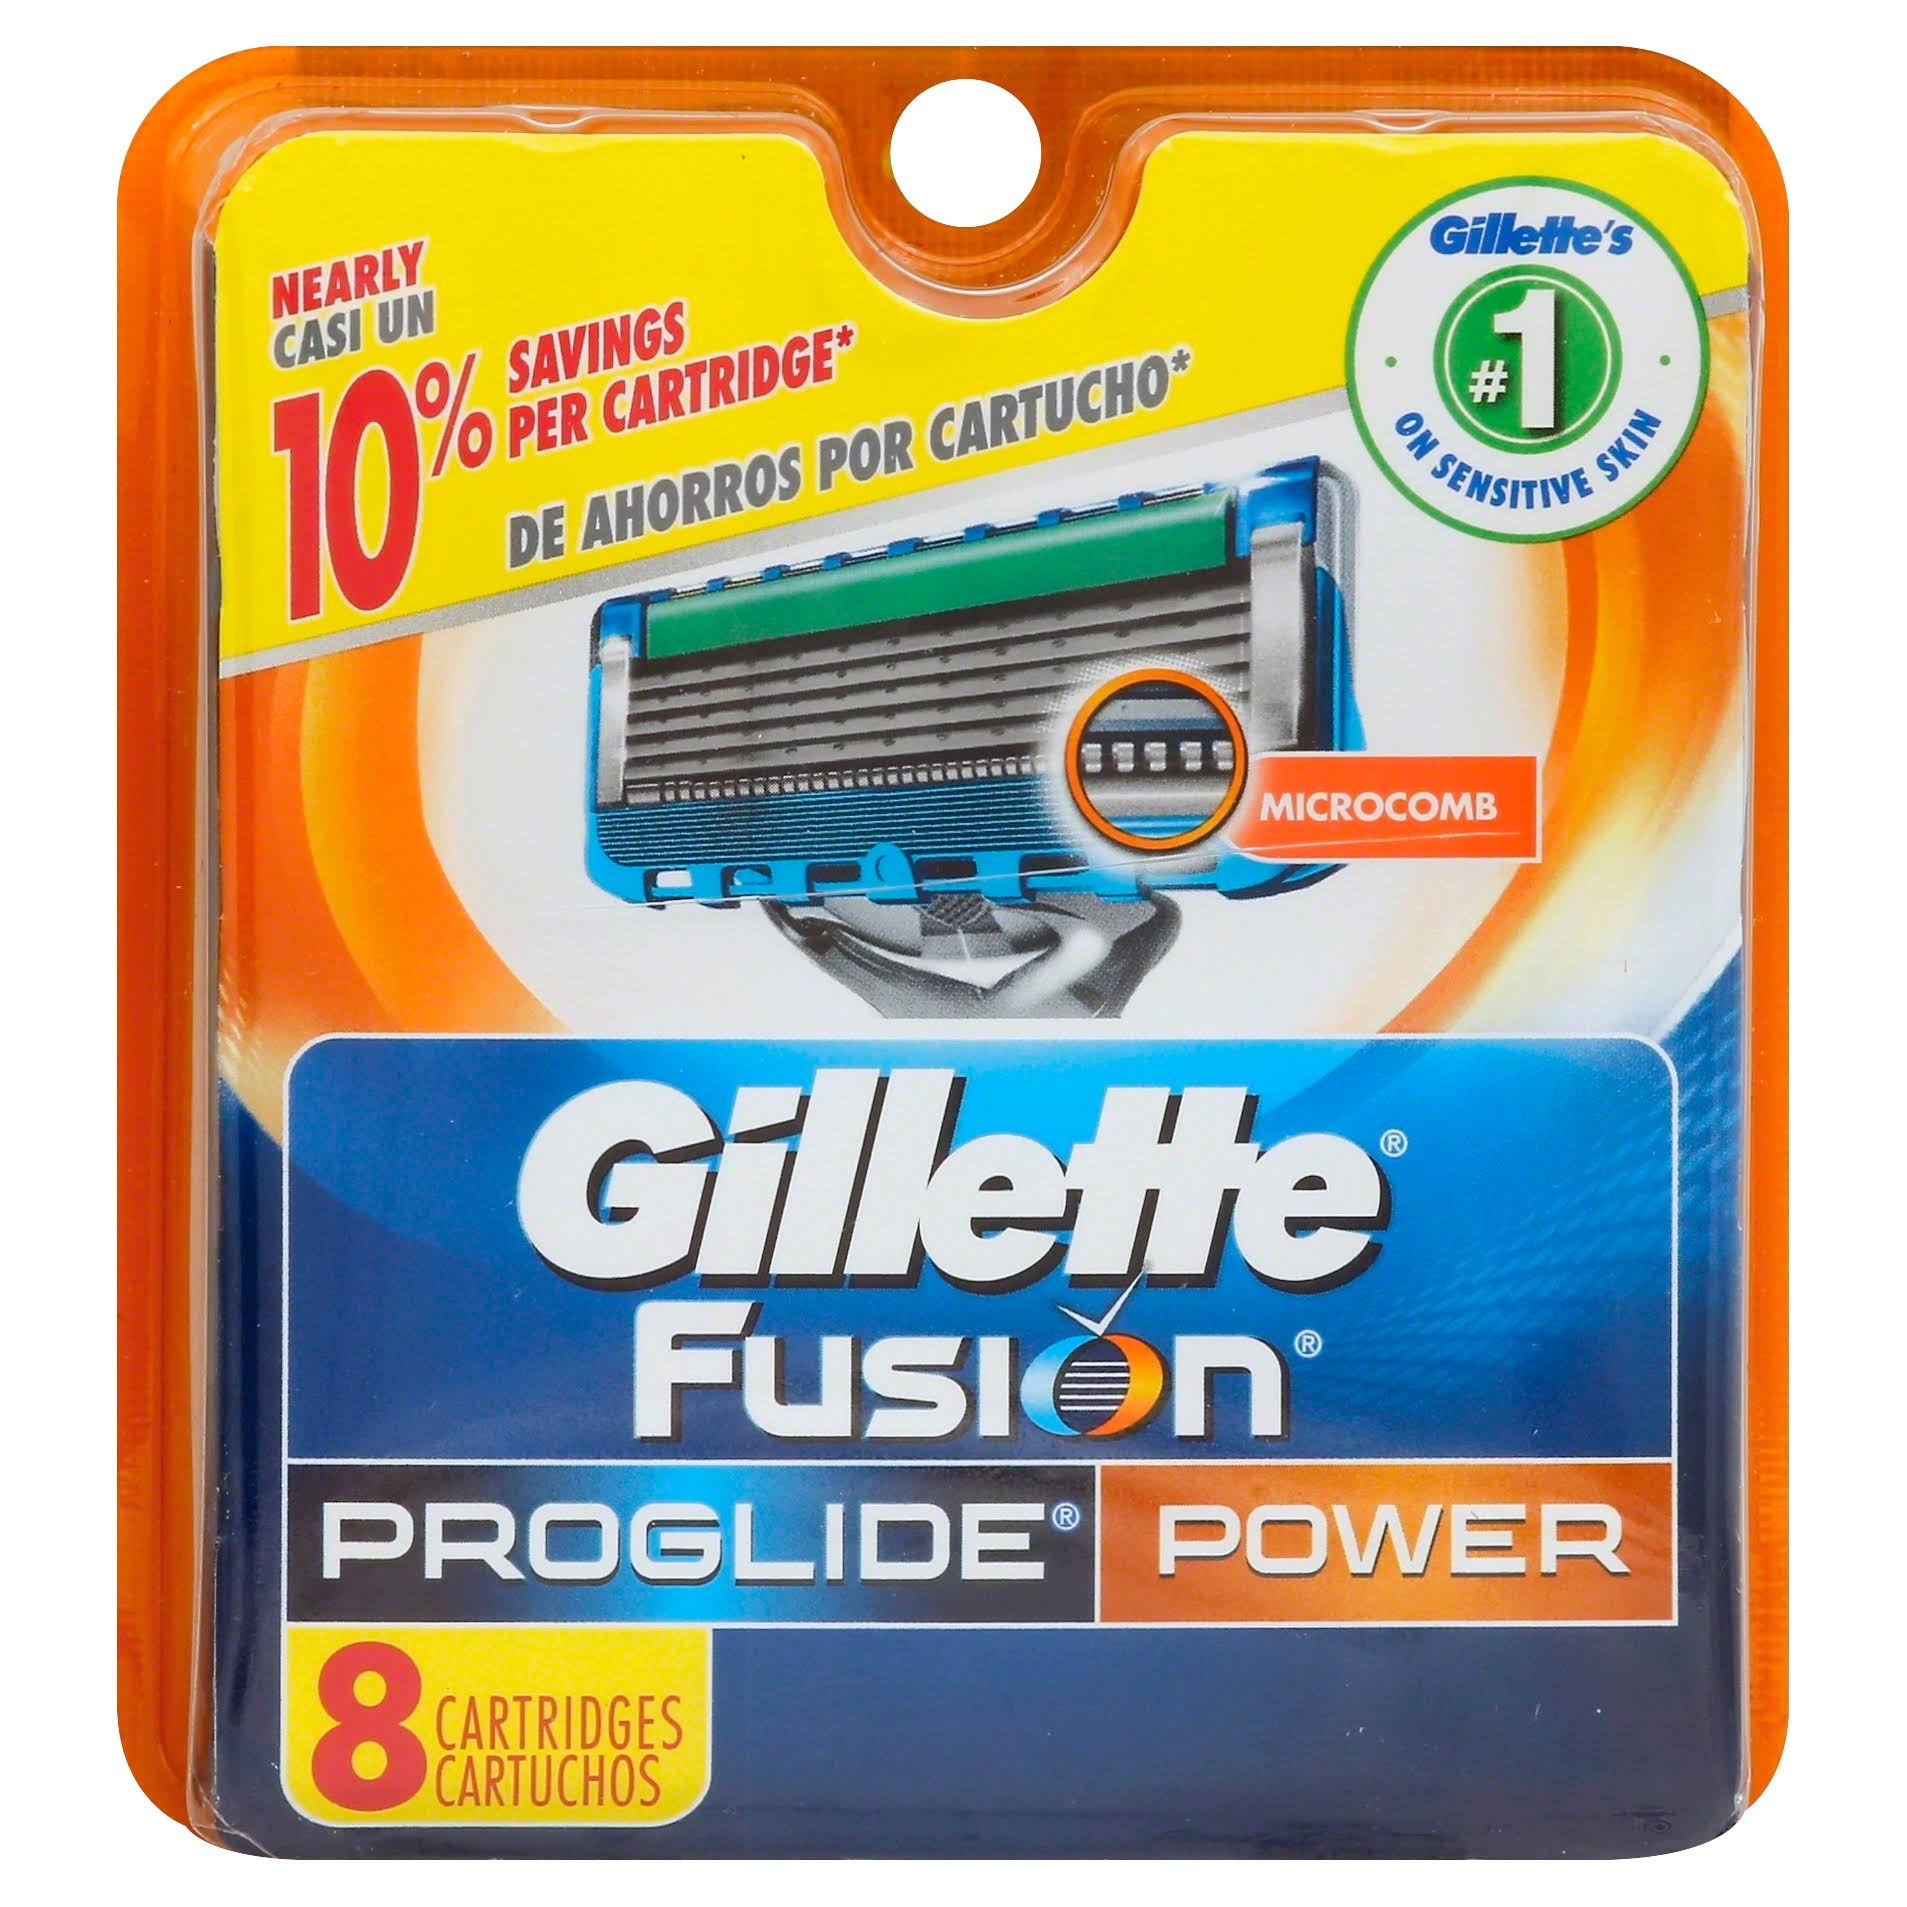 Gillette Fusion Proglide Power Cartridges - 8ct